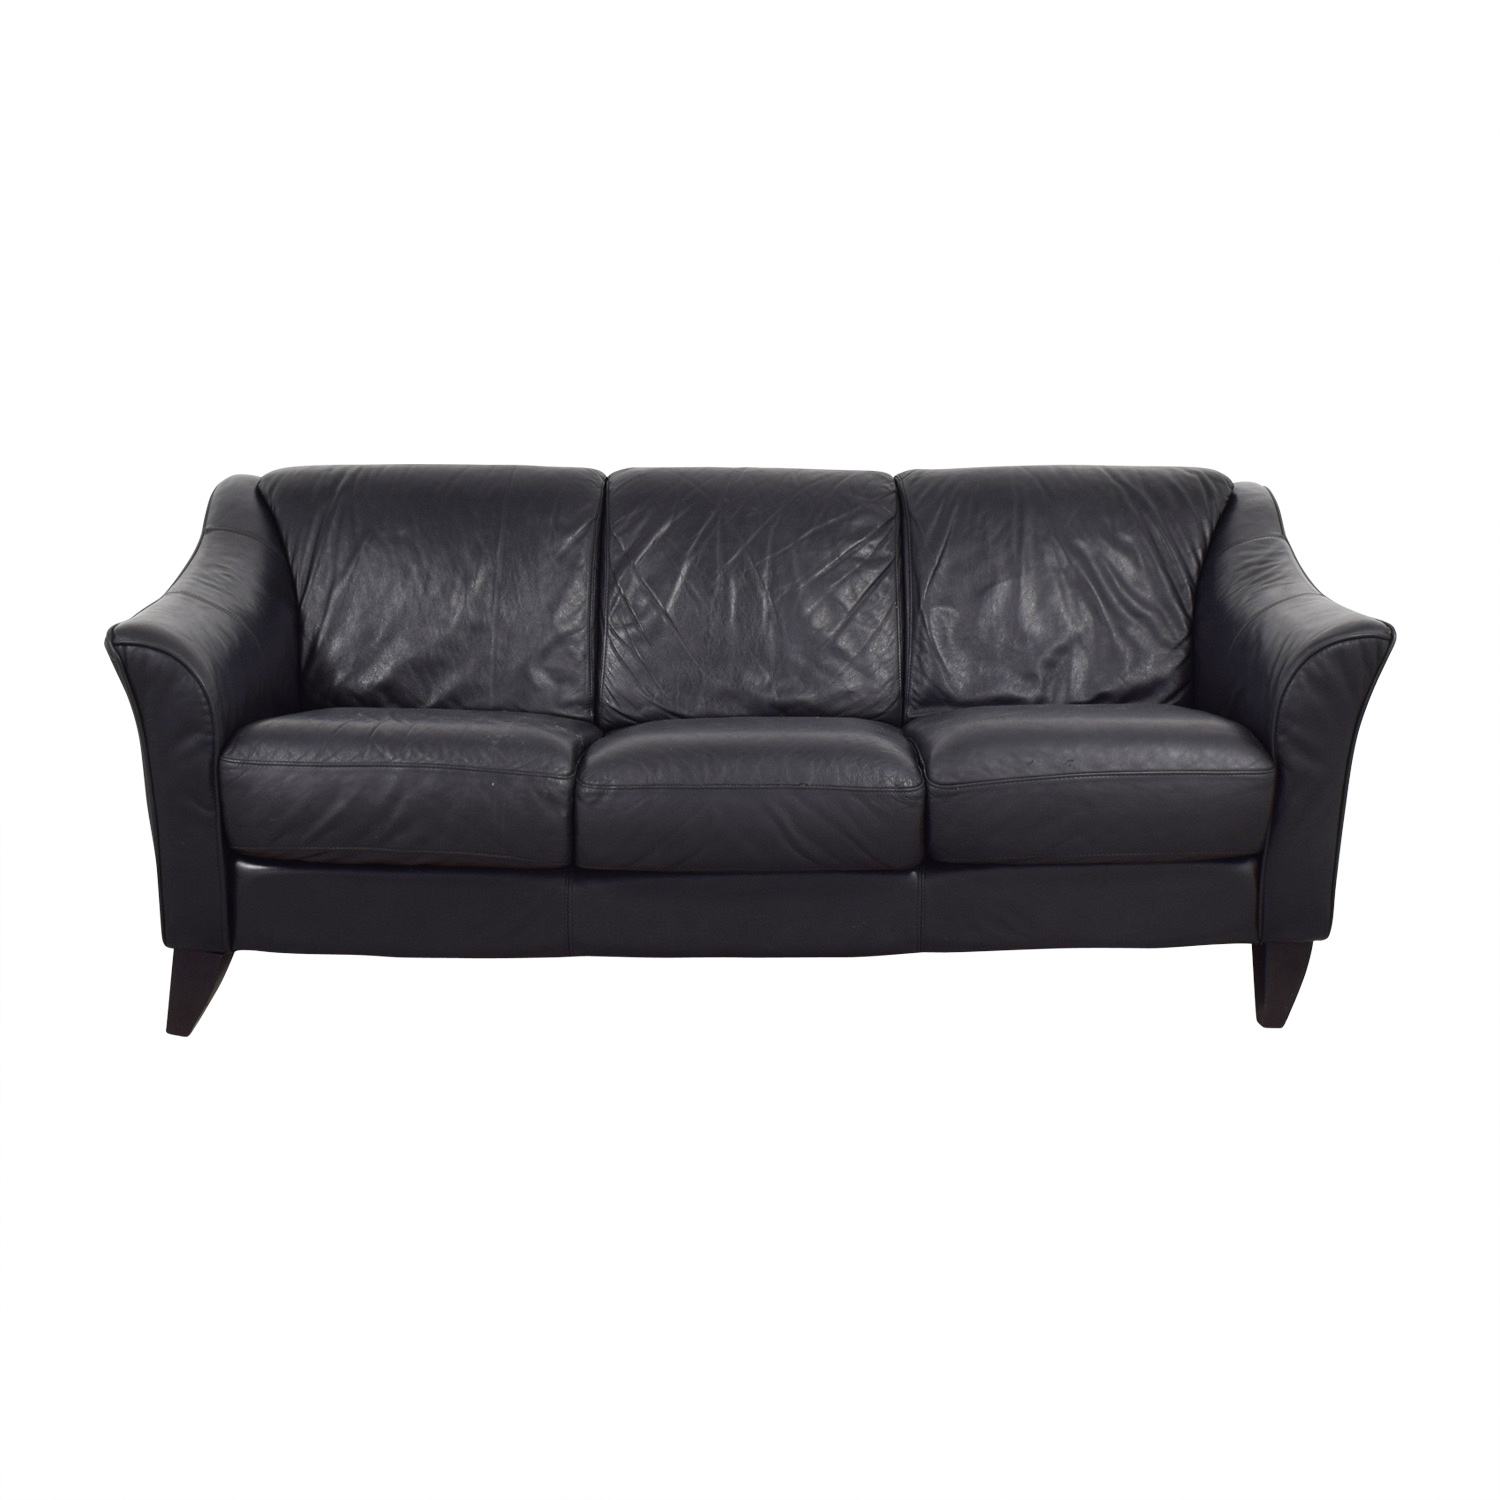 shop Bloomingdales Bloomingdales Three-Cushion Black Leather Sofa online